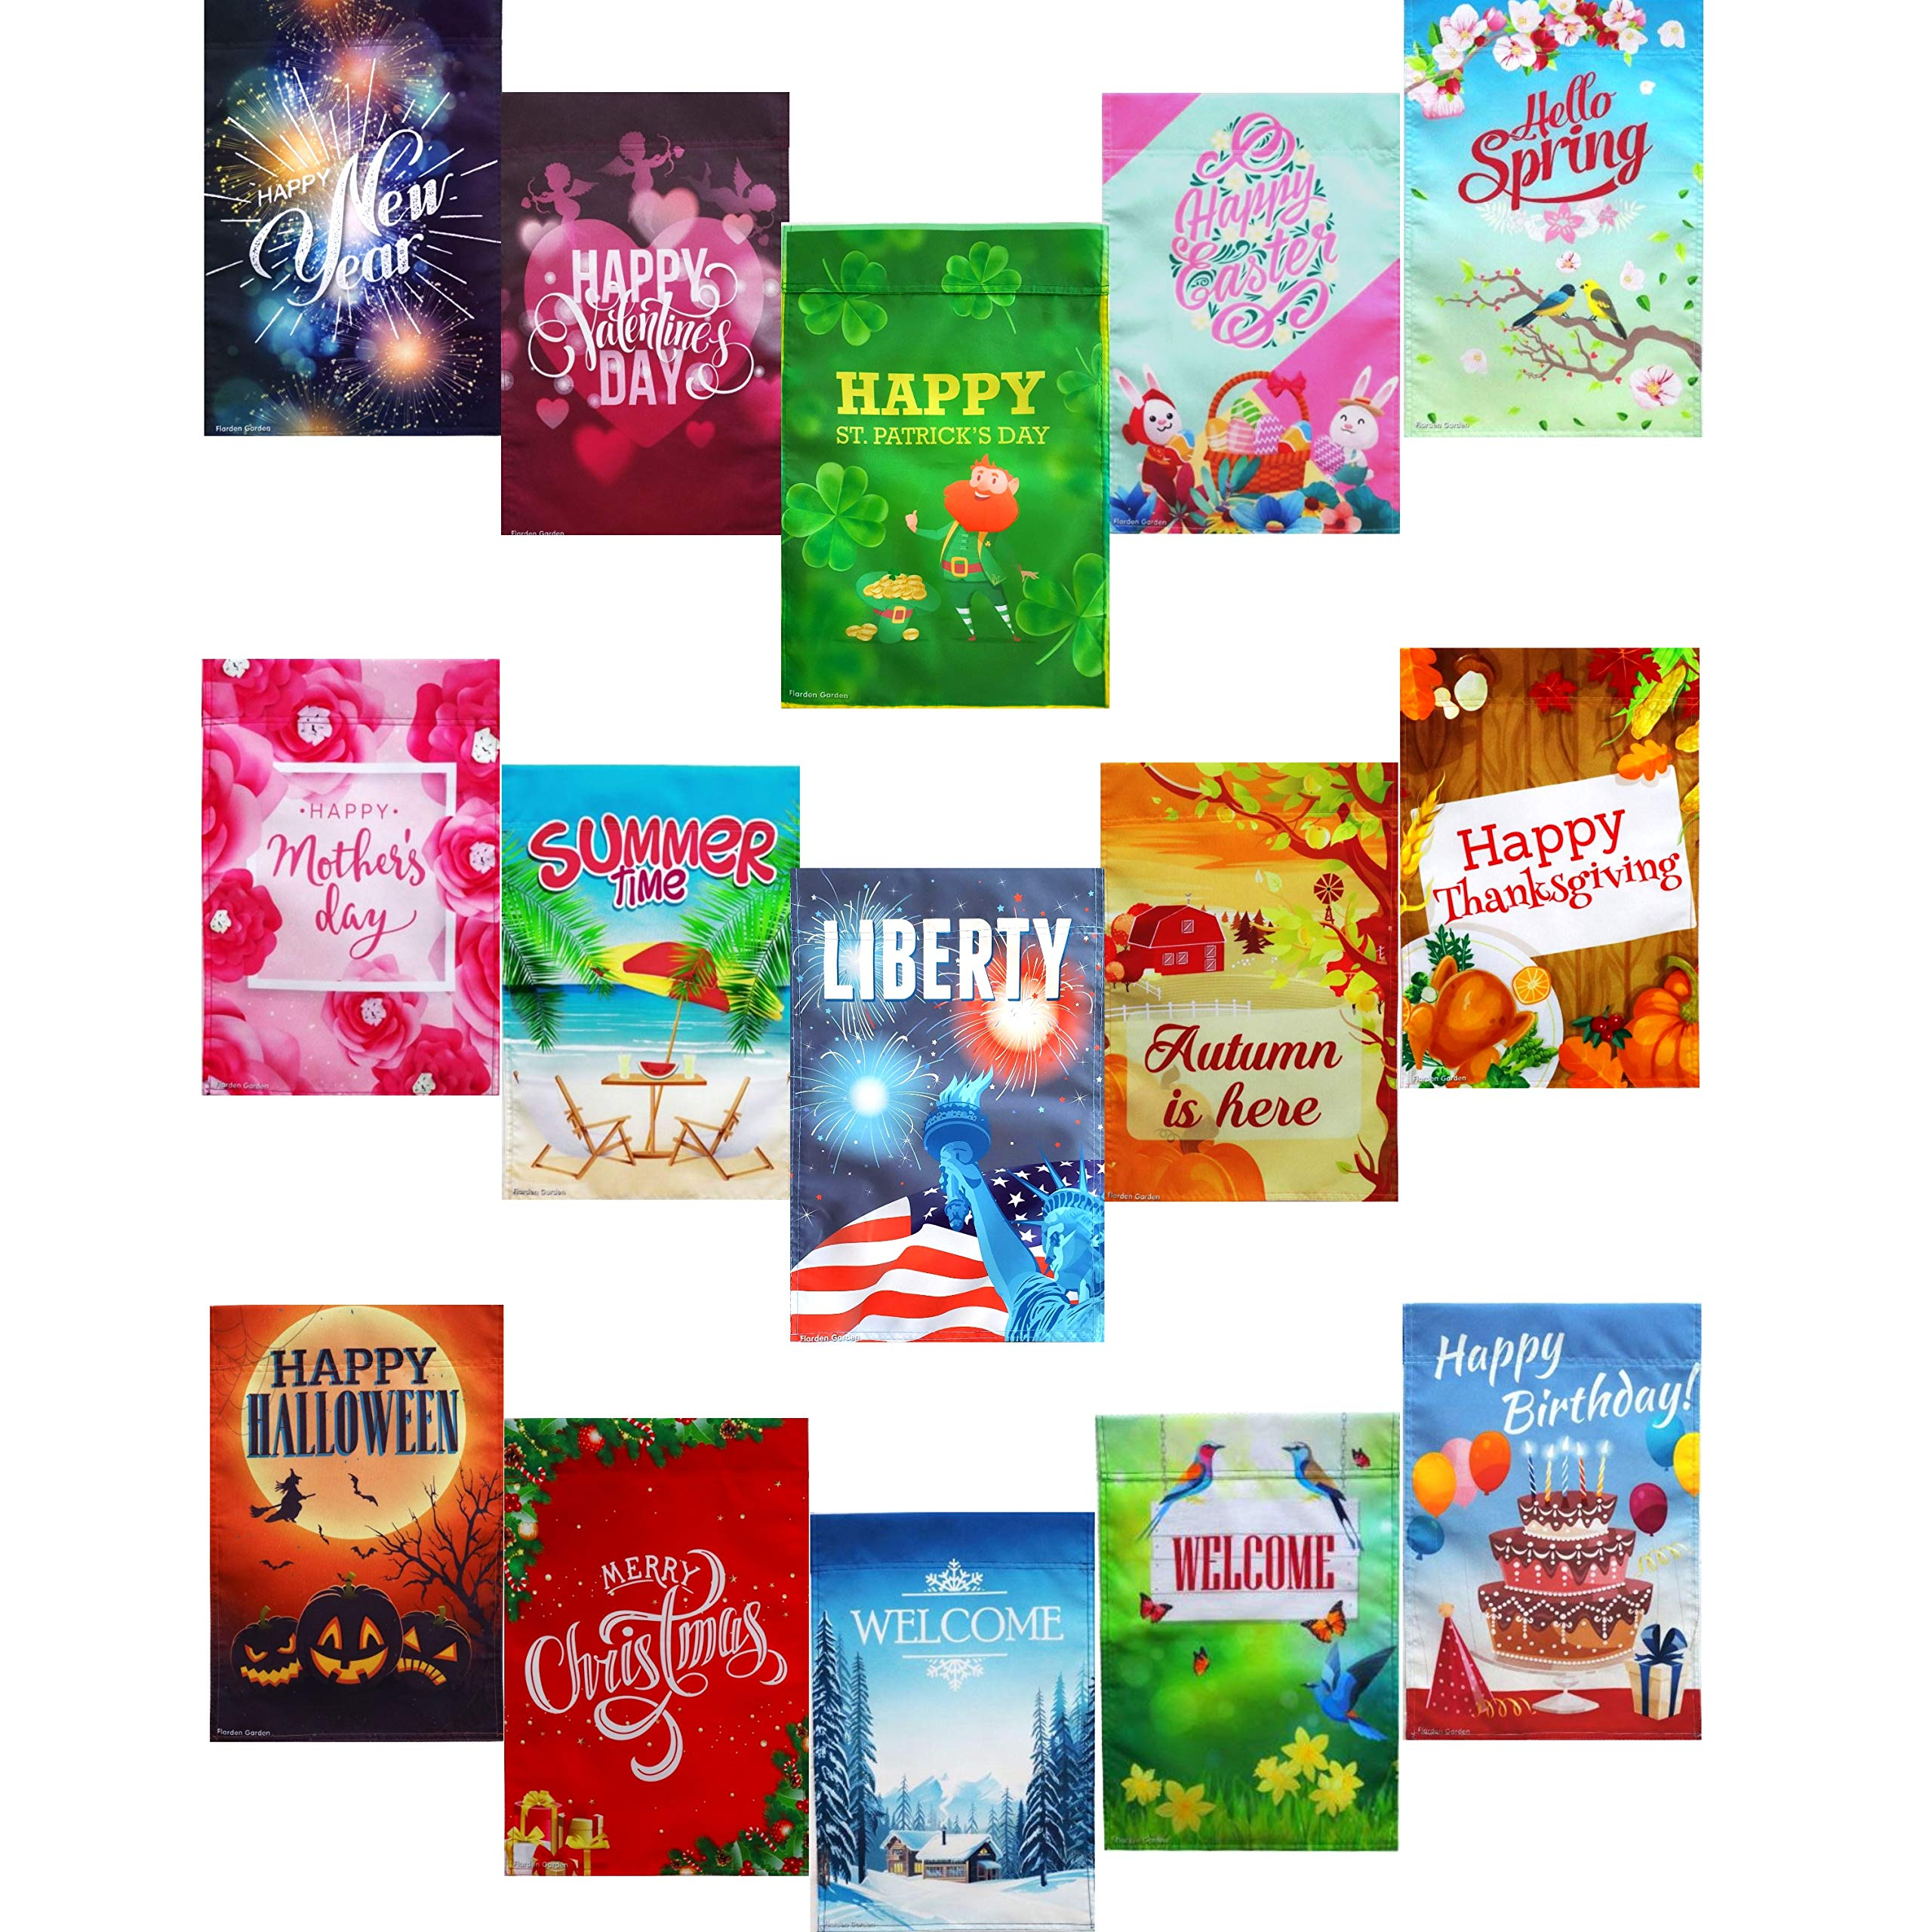 15 Double-Sided Seasonal Garden Flag Set, 12x18 inches, Home and Garden Flag Set for Outdoors, Nice Decorative flags for Outside, and a Great gift too!